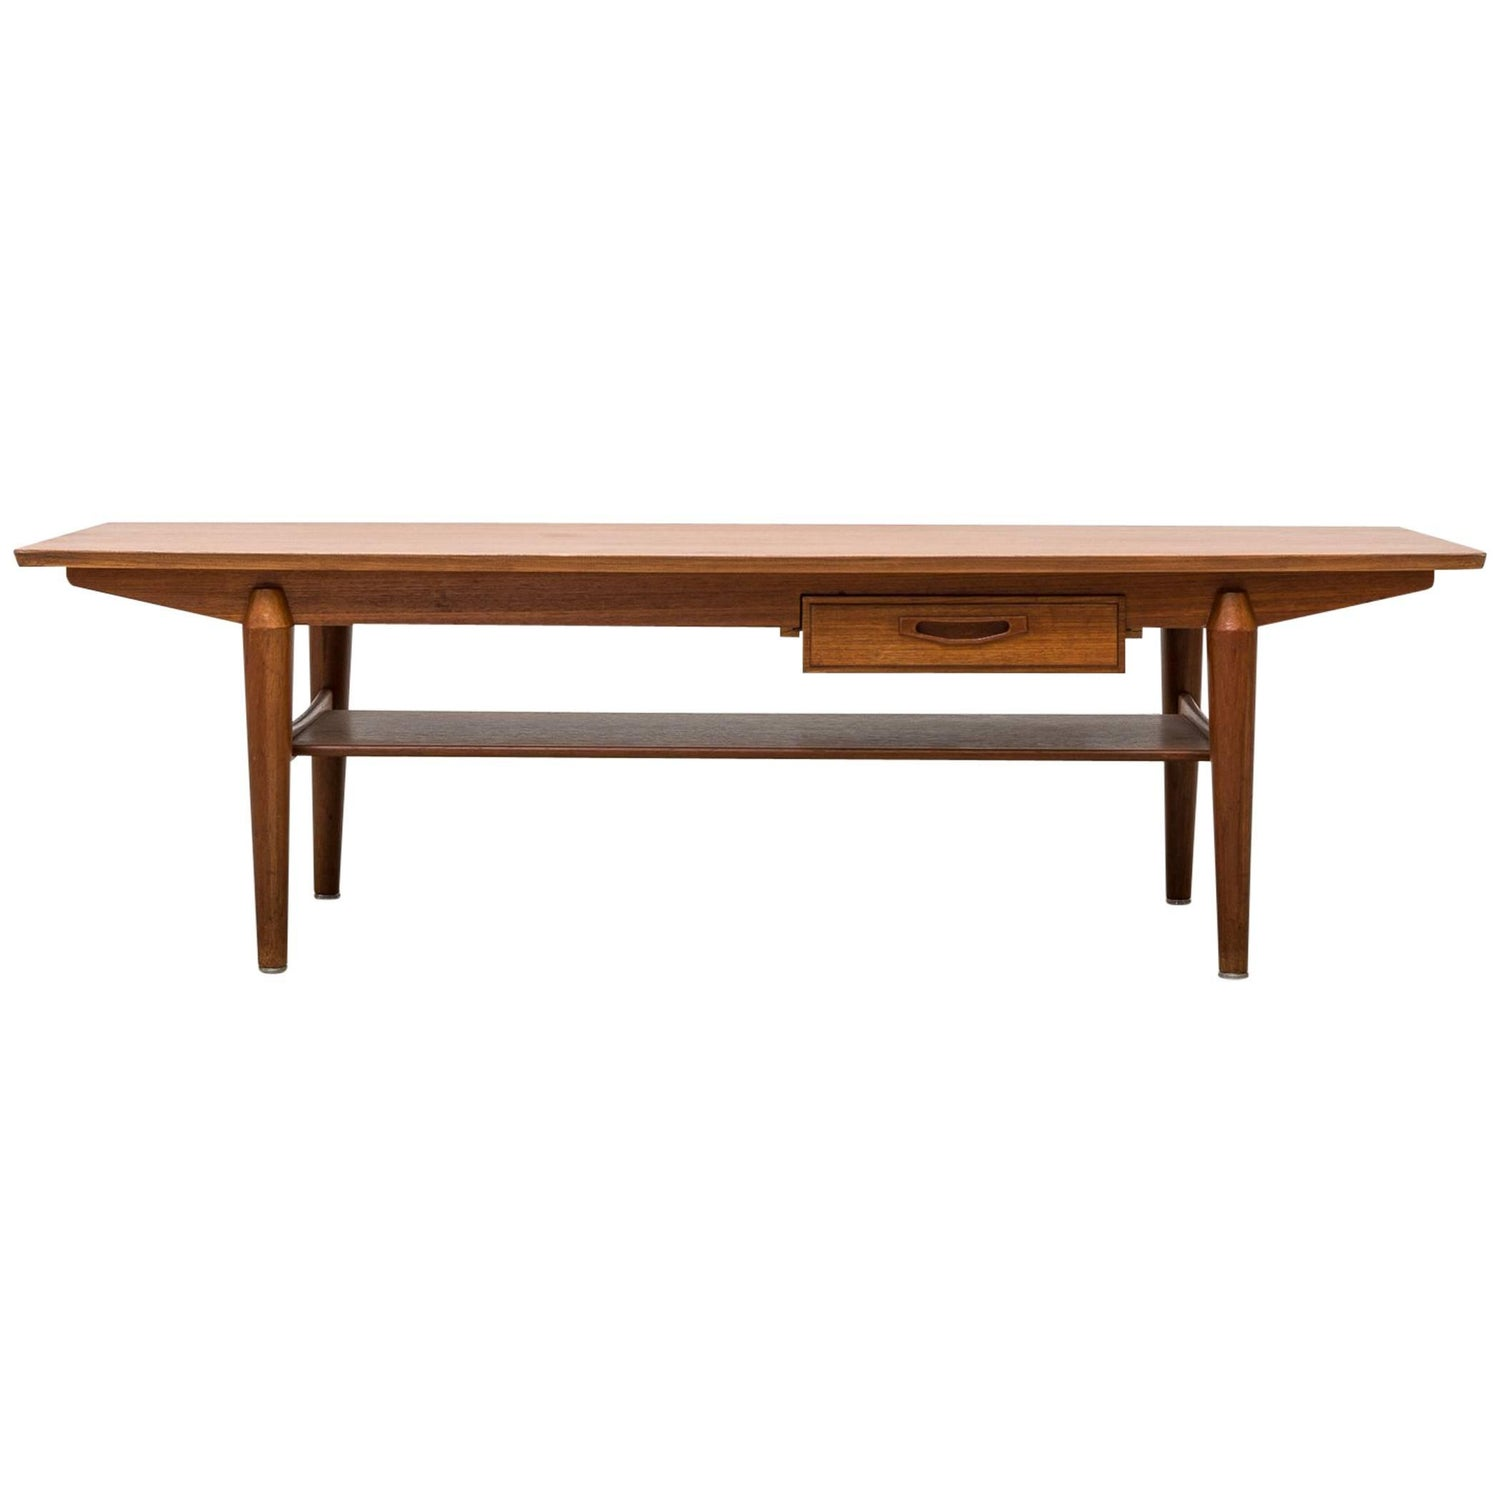 Mid Century Teak Coffee Table with Storage Drawer For Sale at 1stdibs